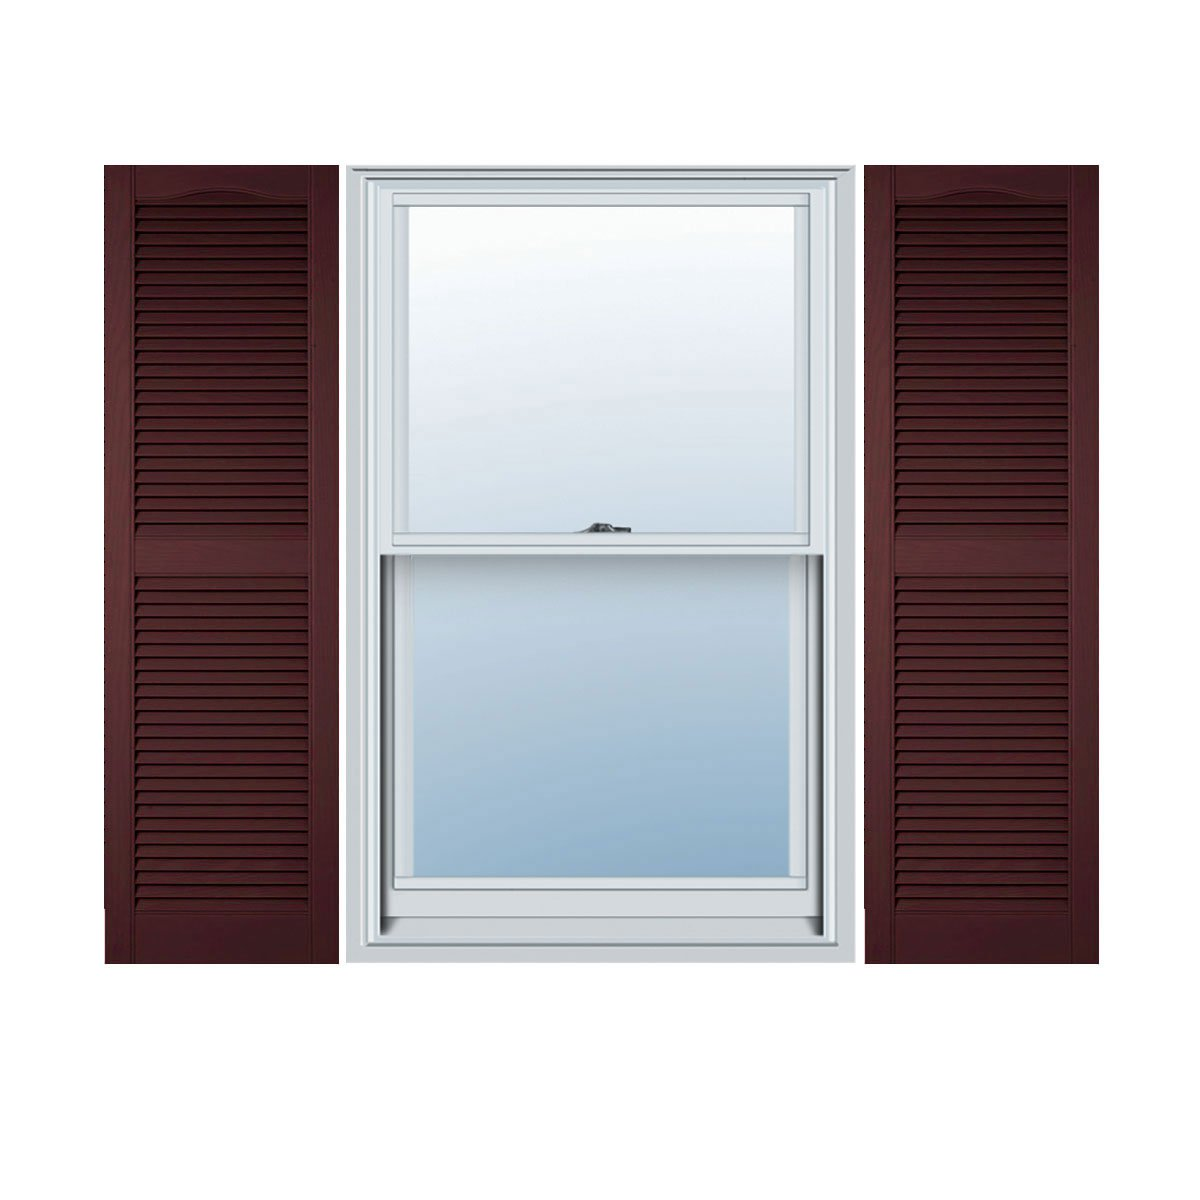 "Ekena Millwork LL1C12X05800BD Custom Cathedral Top Center Mullion, Open LouverShutter (Per Pair)12""W x 58""HBordeaux"